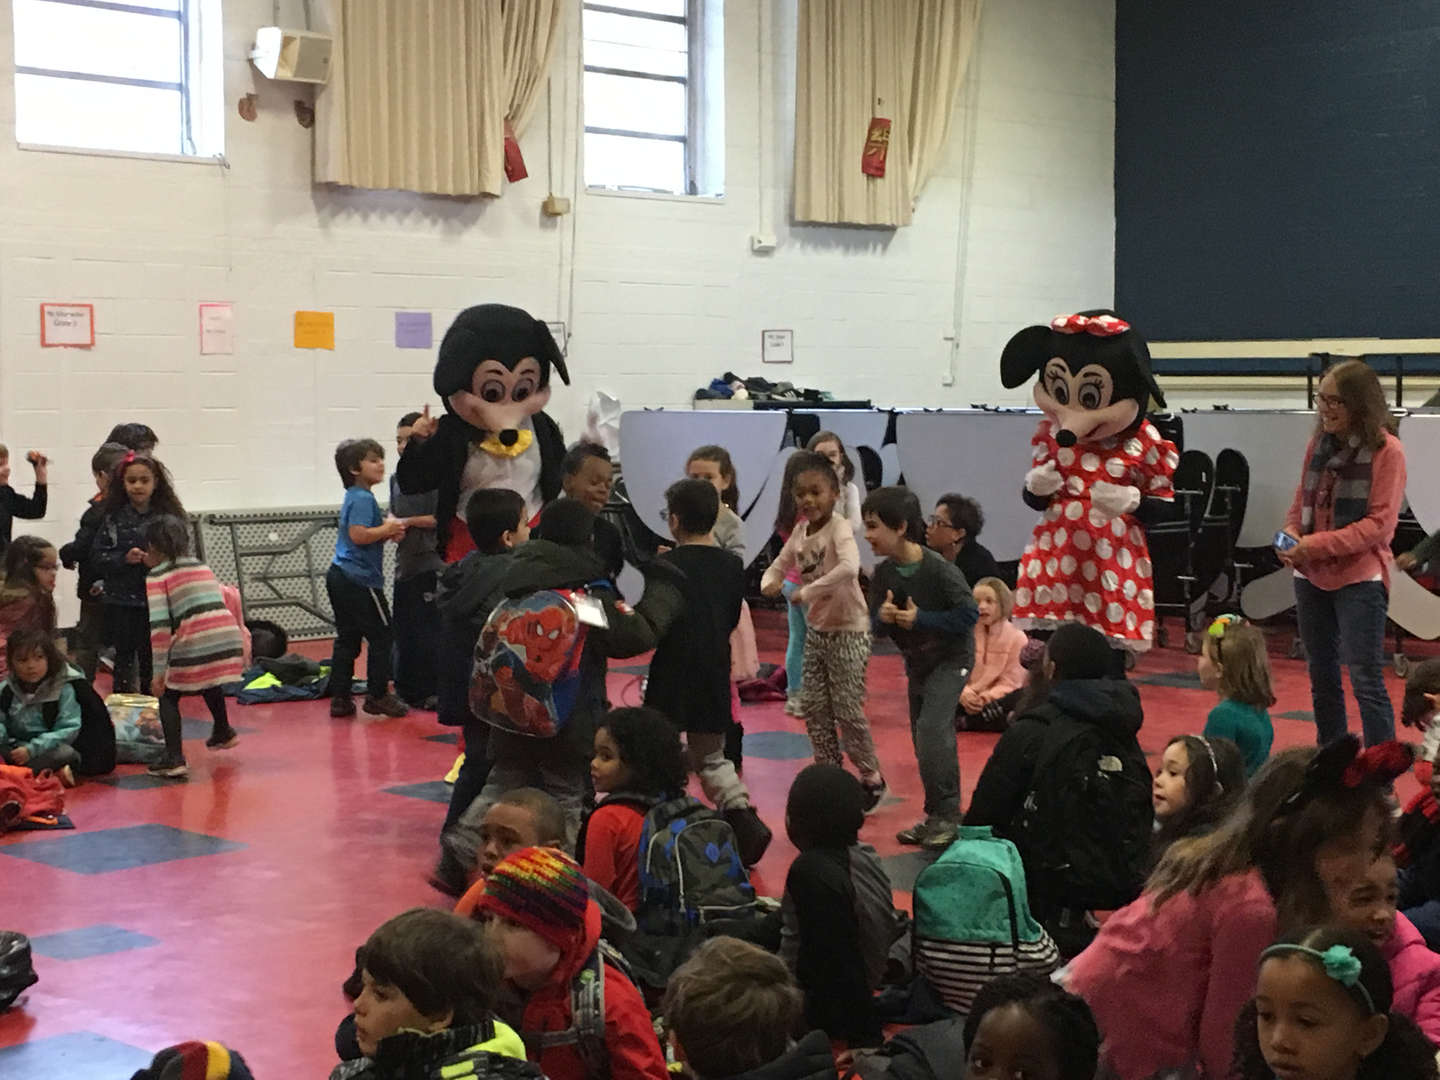 Students welcome a visit from Mickey and Minnie Mouse on Wednesday, Nov. 21